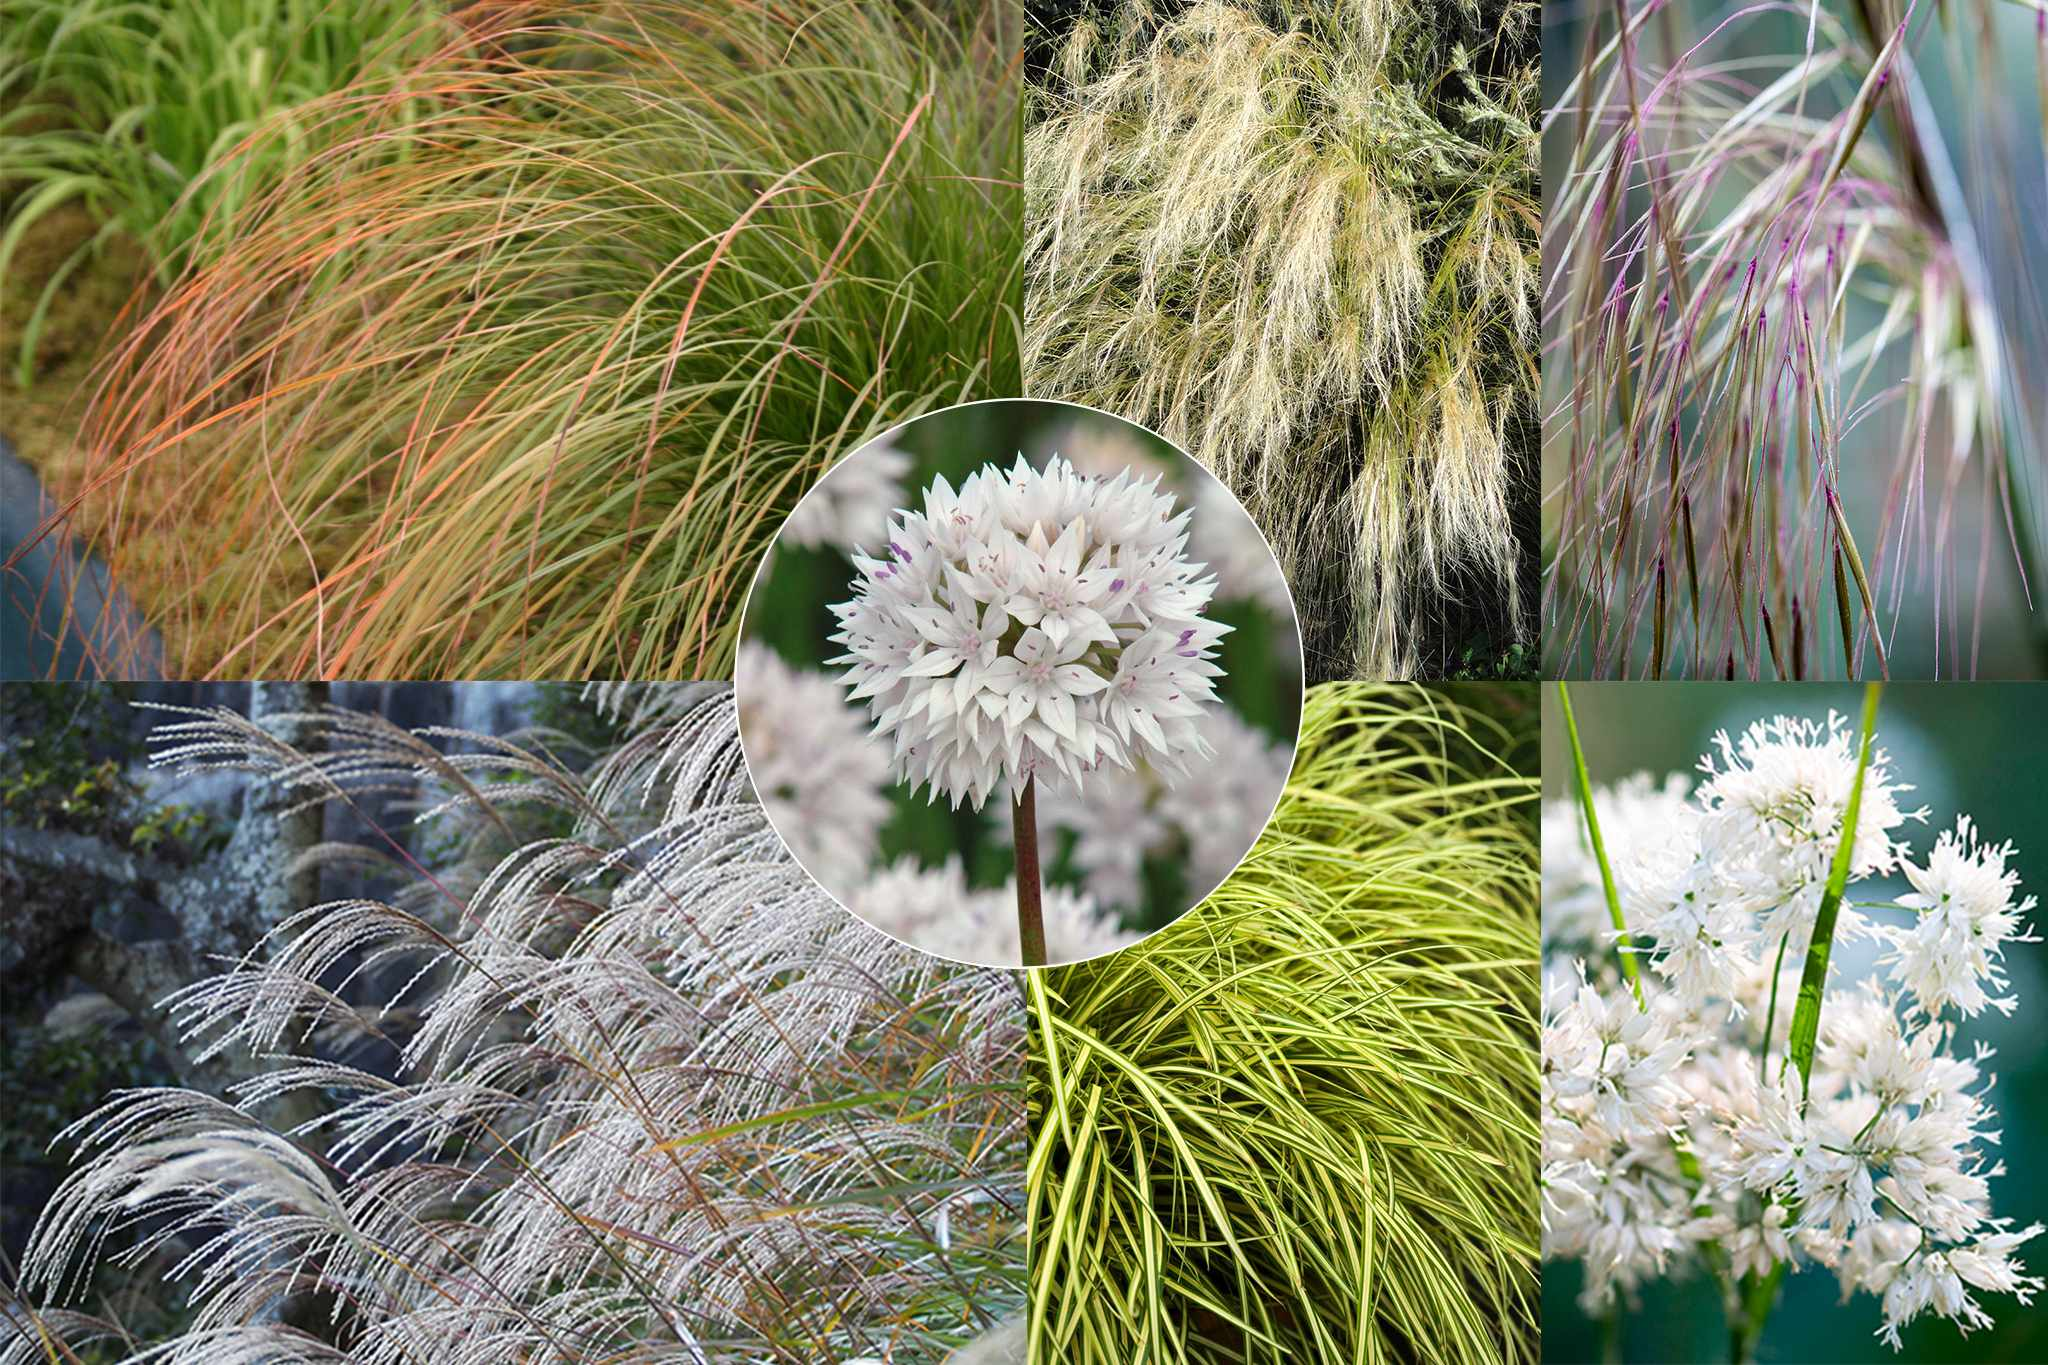 hayloft-grasses-half-price-allium-bulbs-2048-1365